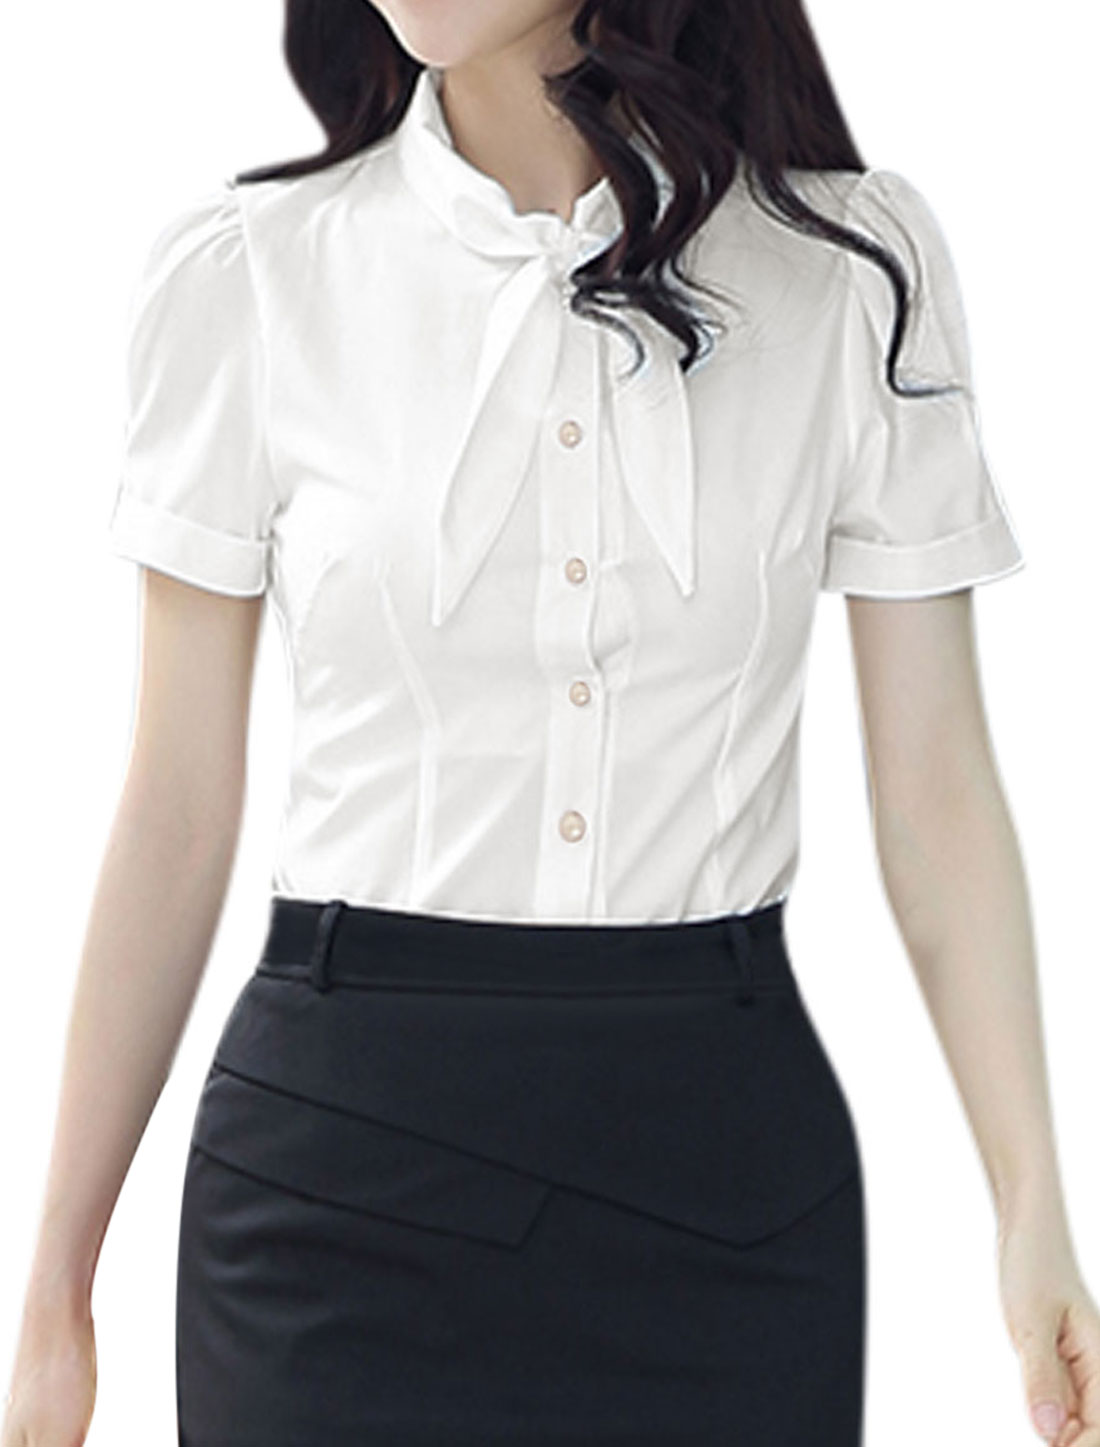 Woman Tie Bow Neck Short Sleeves Button Closure Rolled Cuffs Shirt White M